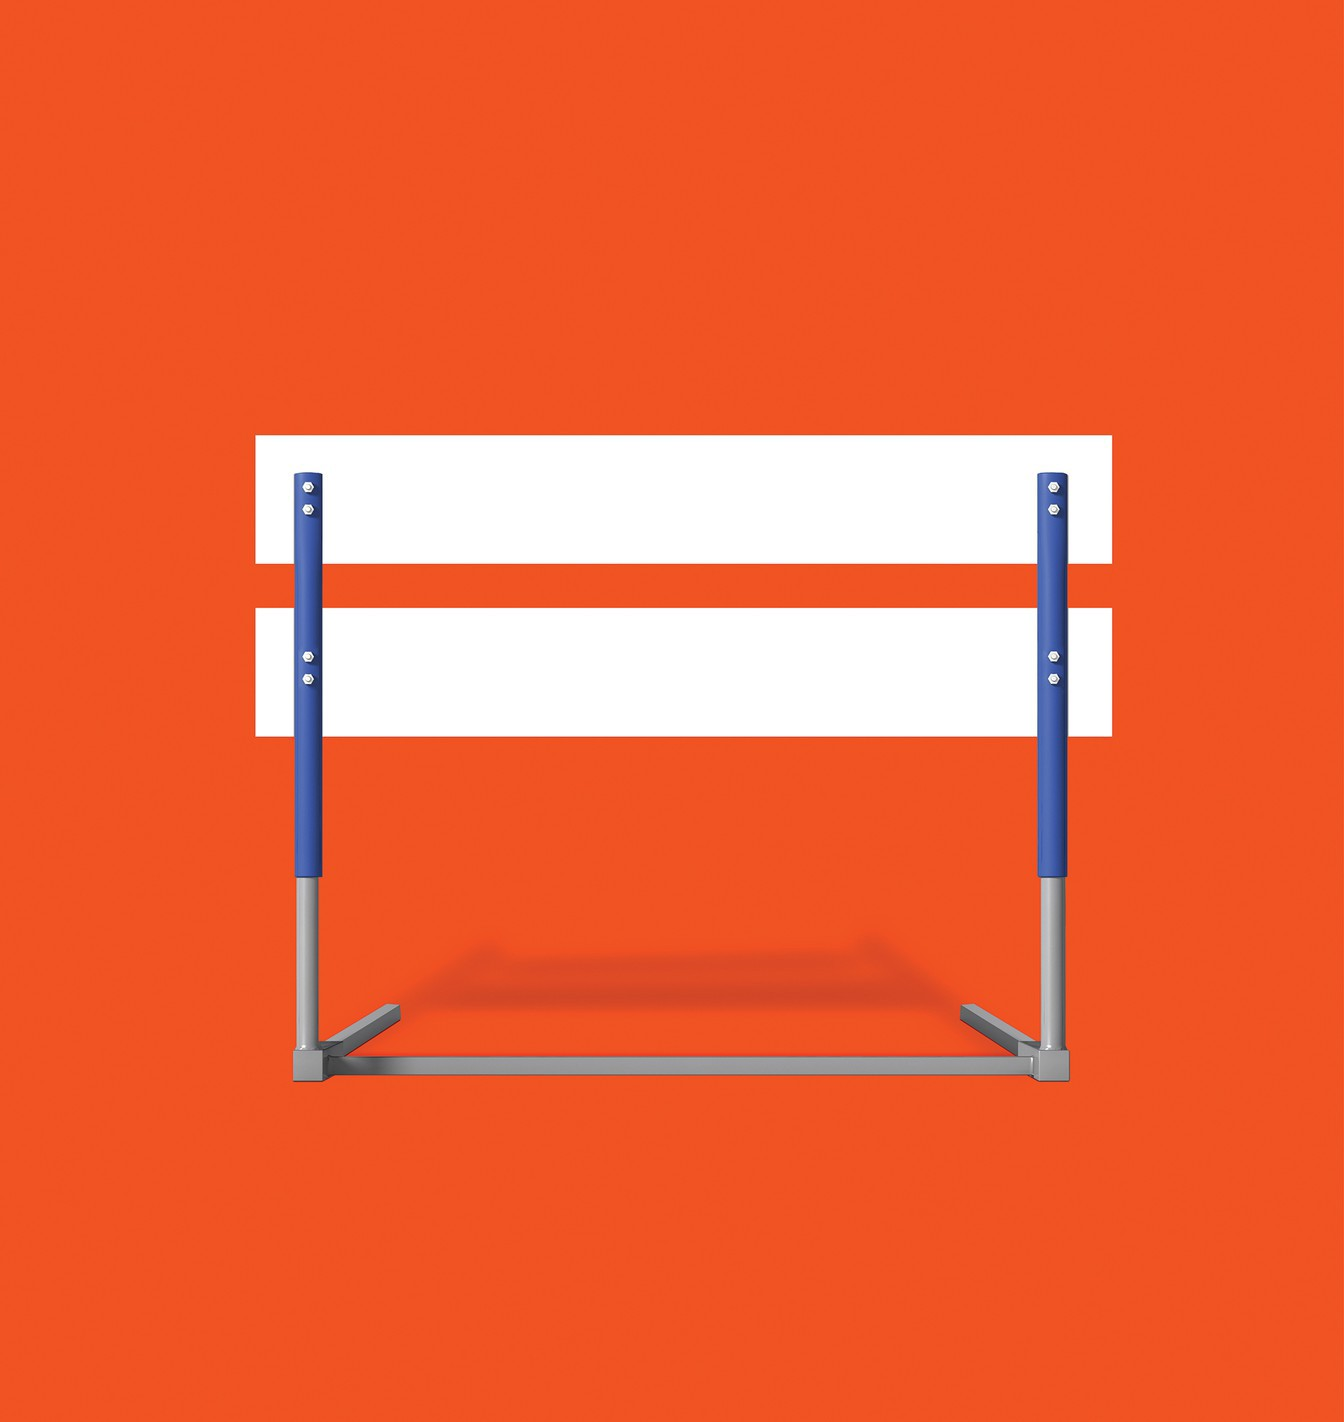 A white-and-blue hurdle casting a shadow on a flat orange background.